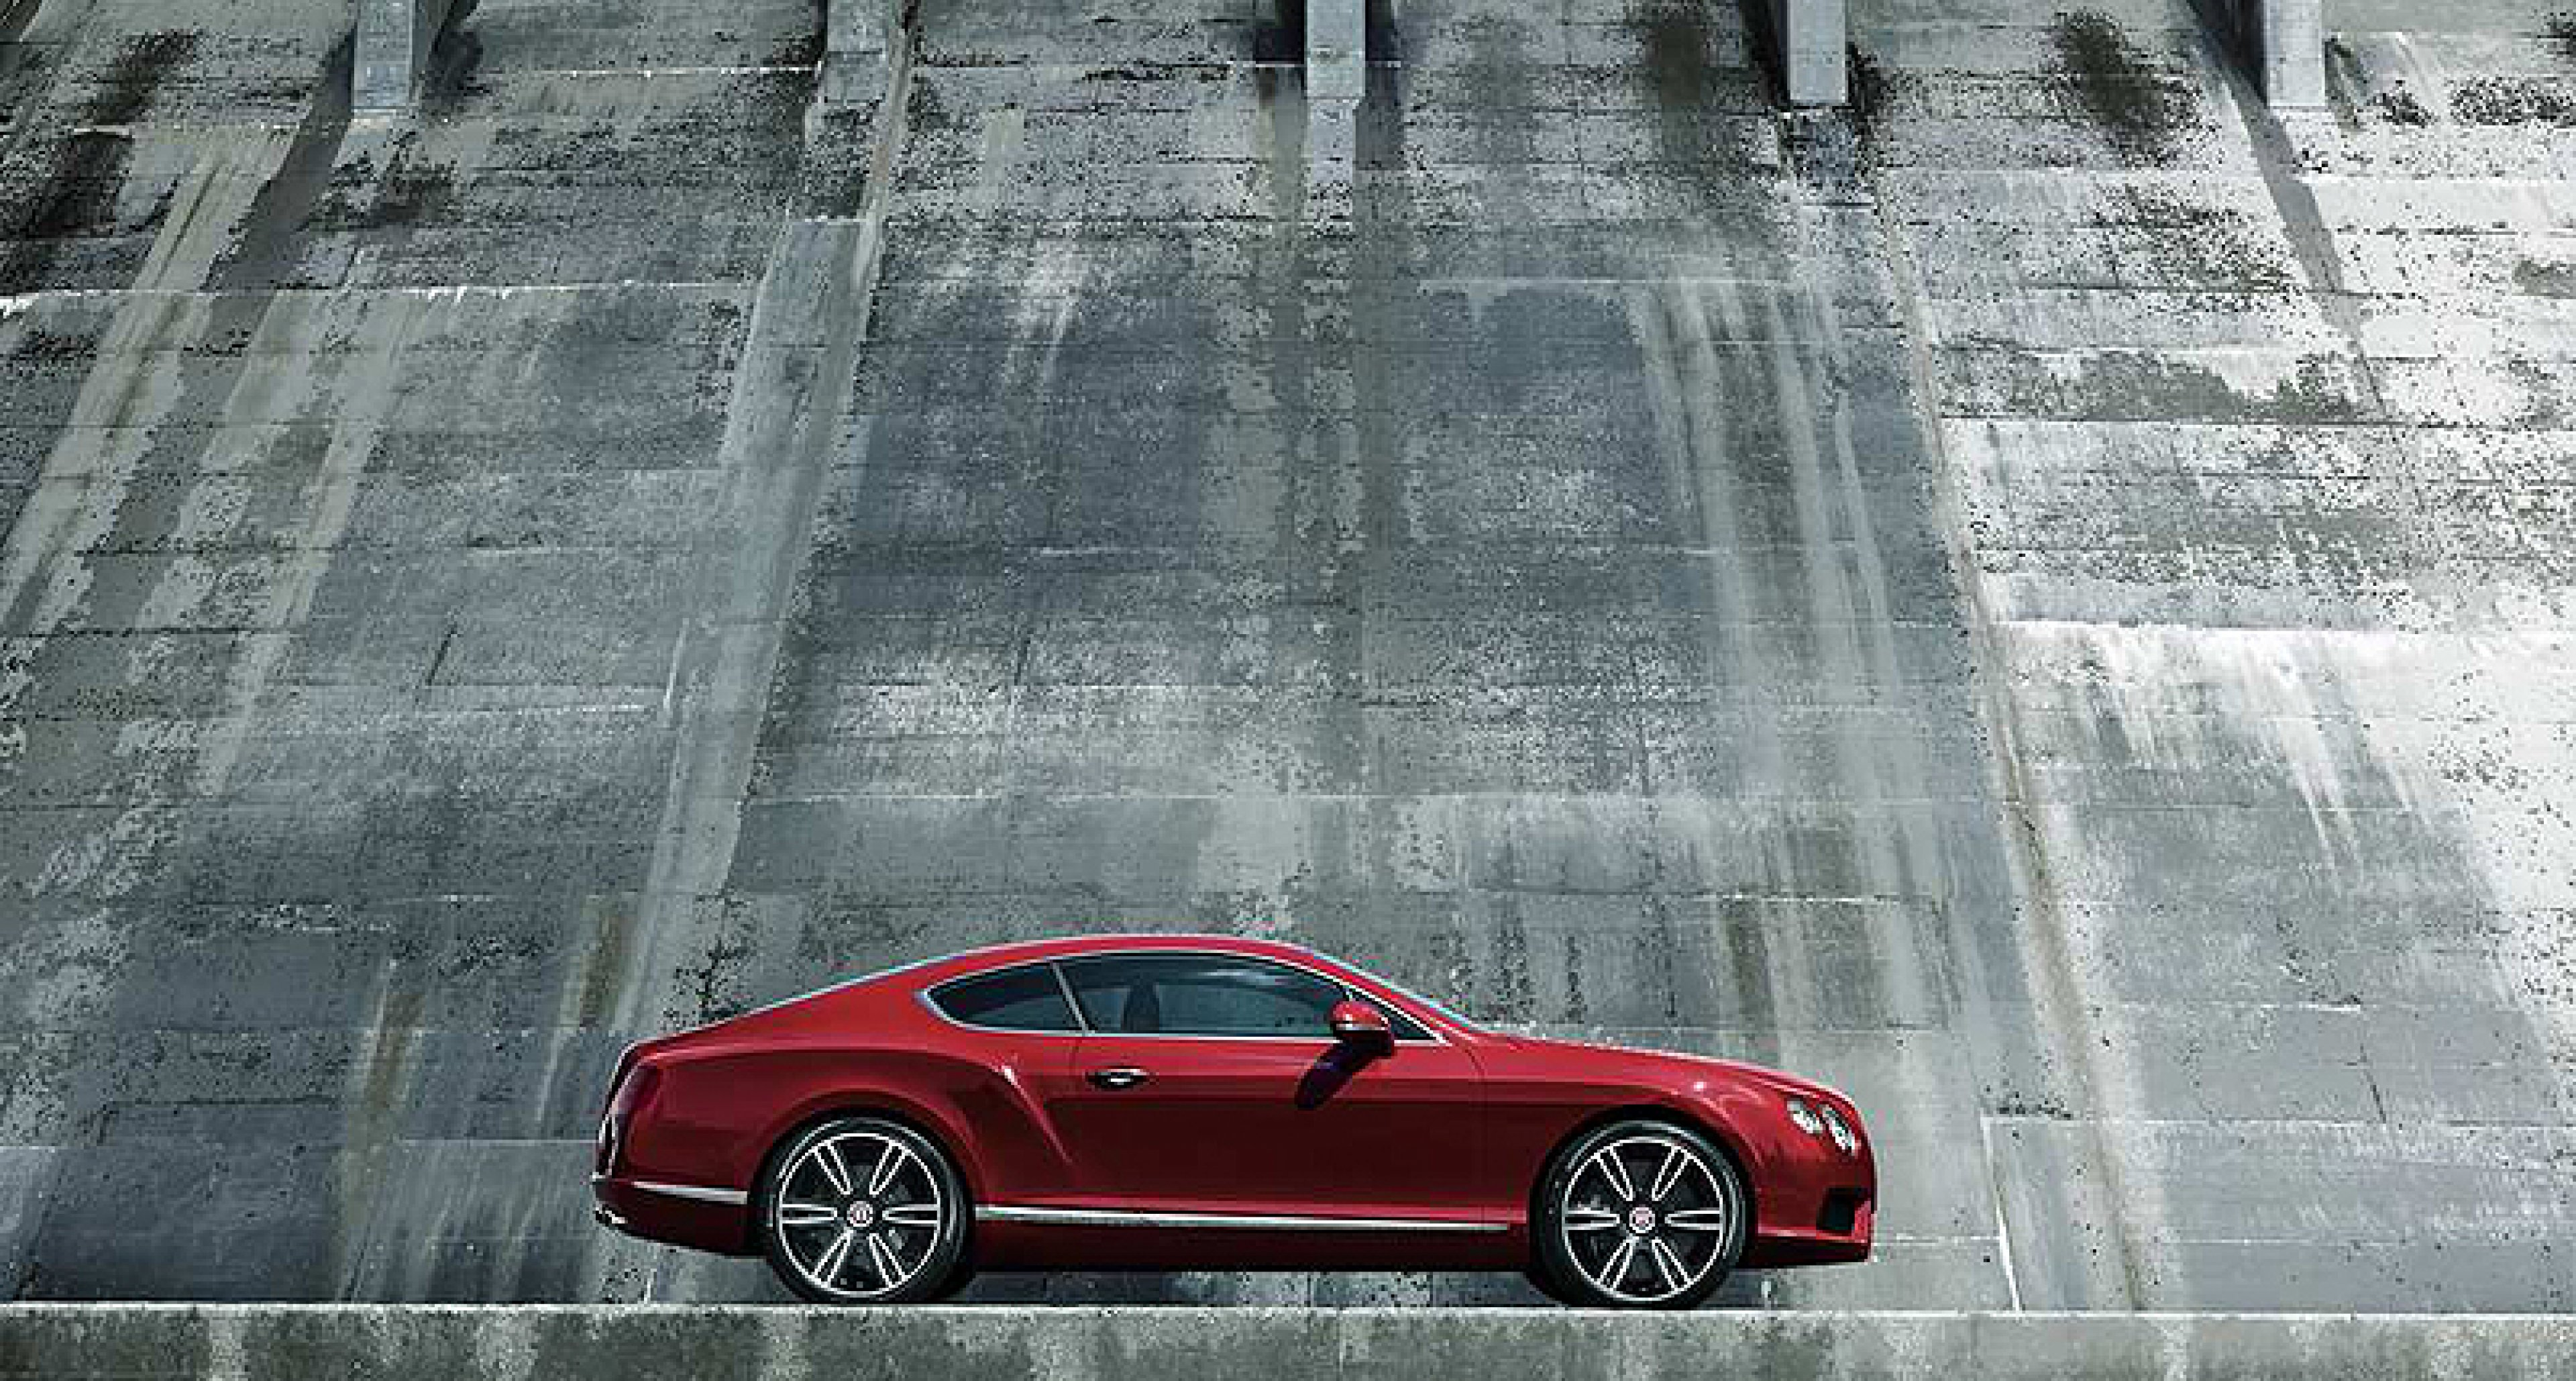 The new Bentley Continental V8